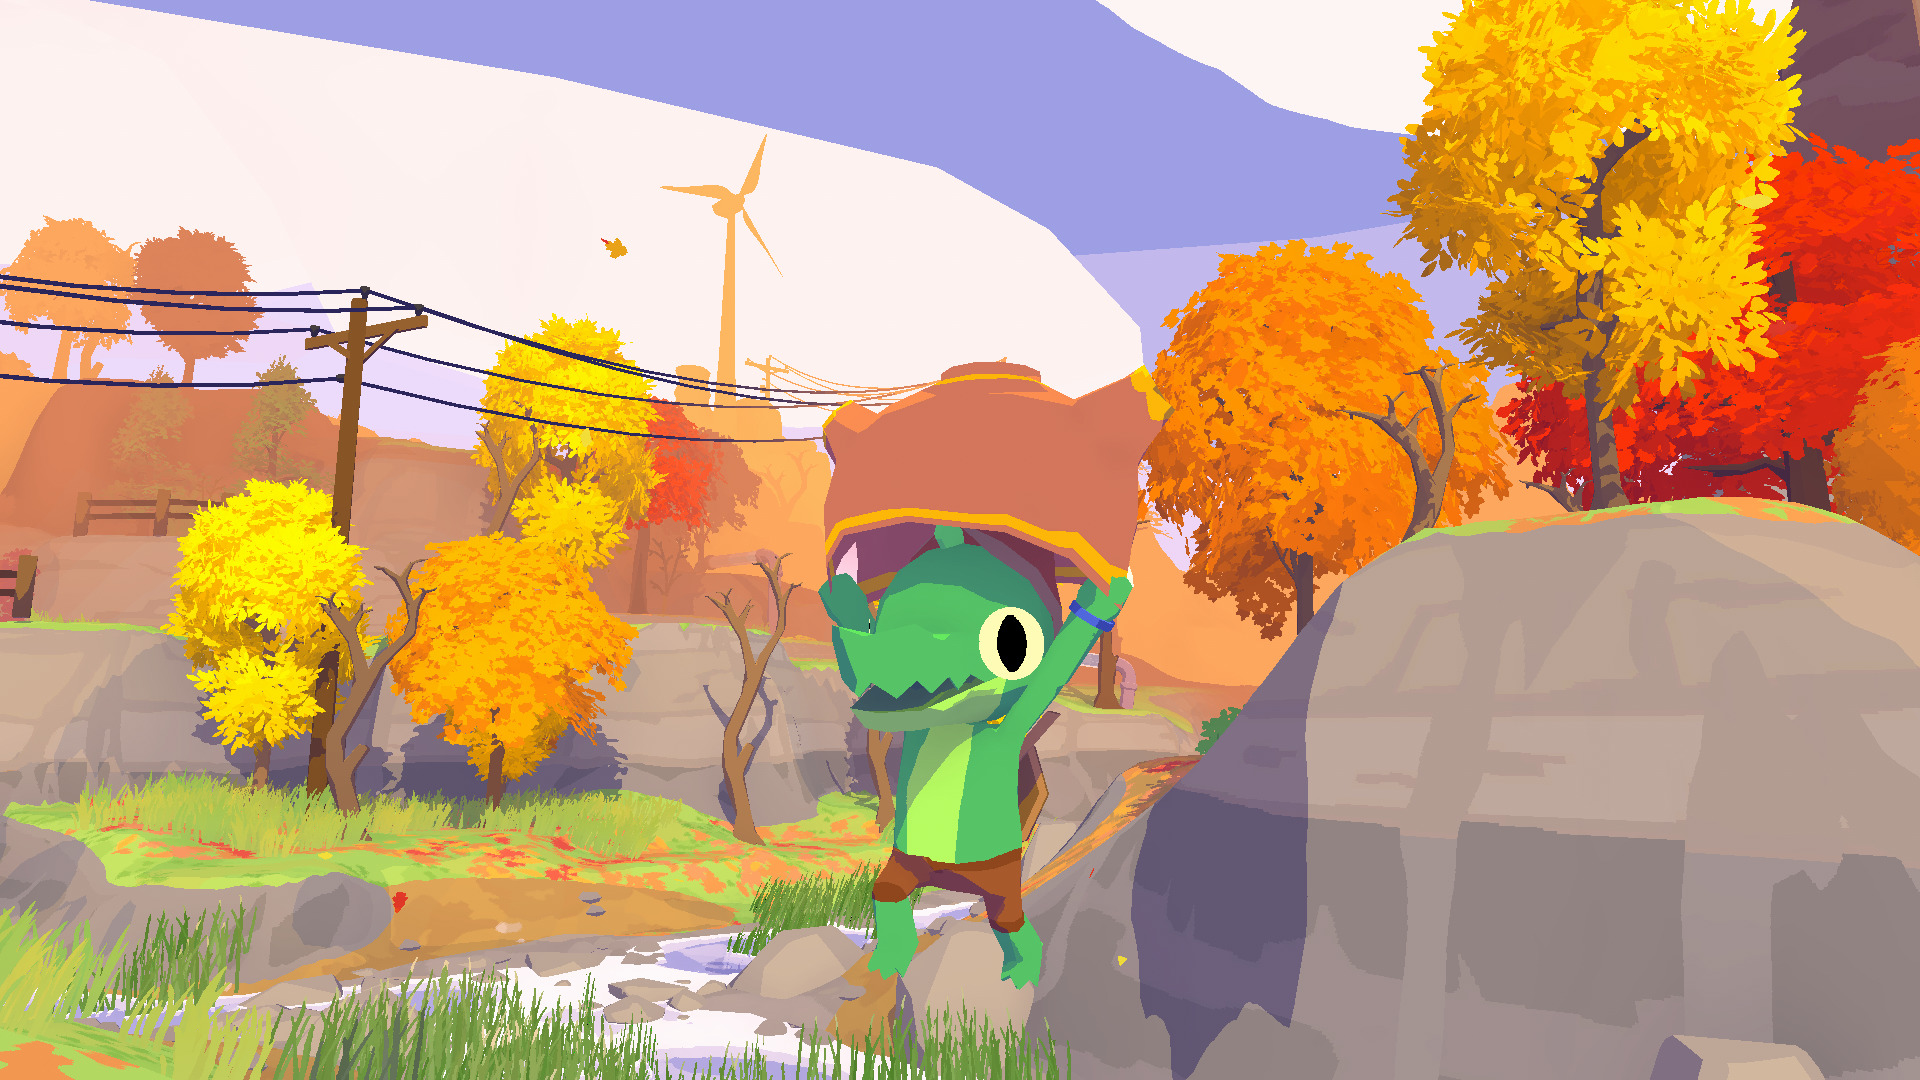 Playtonic Friends is Publishing Lil Gator Game